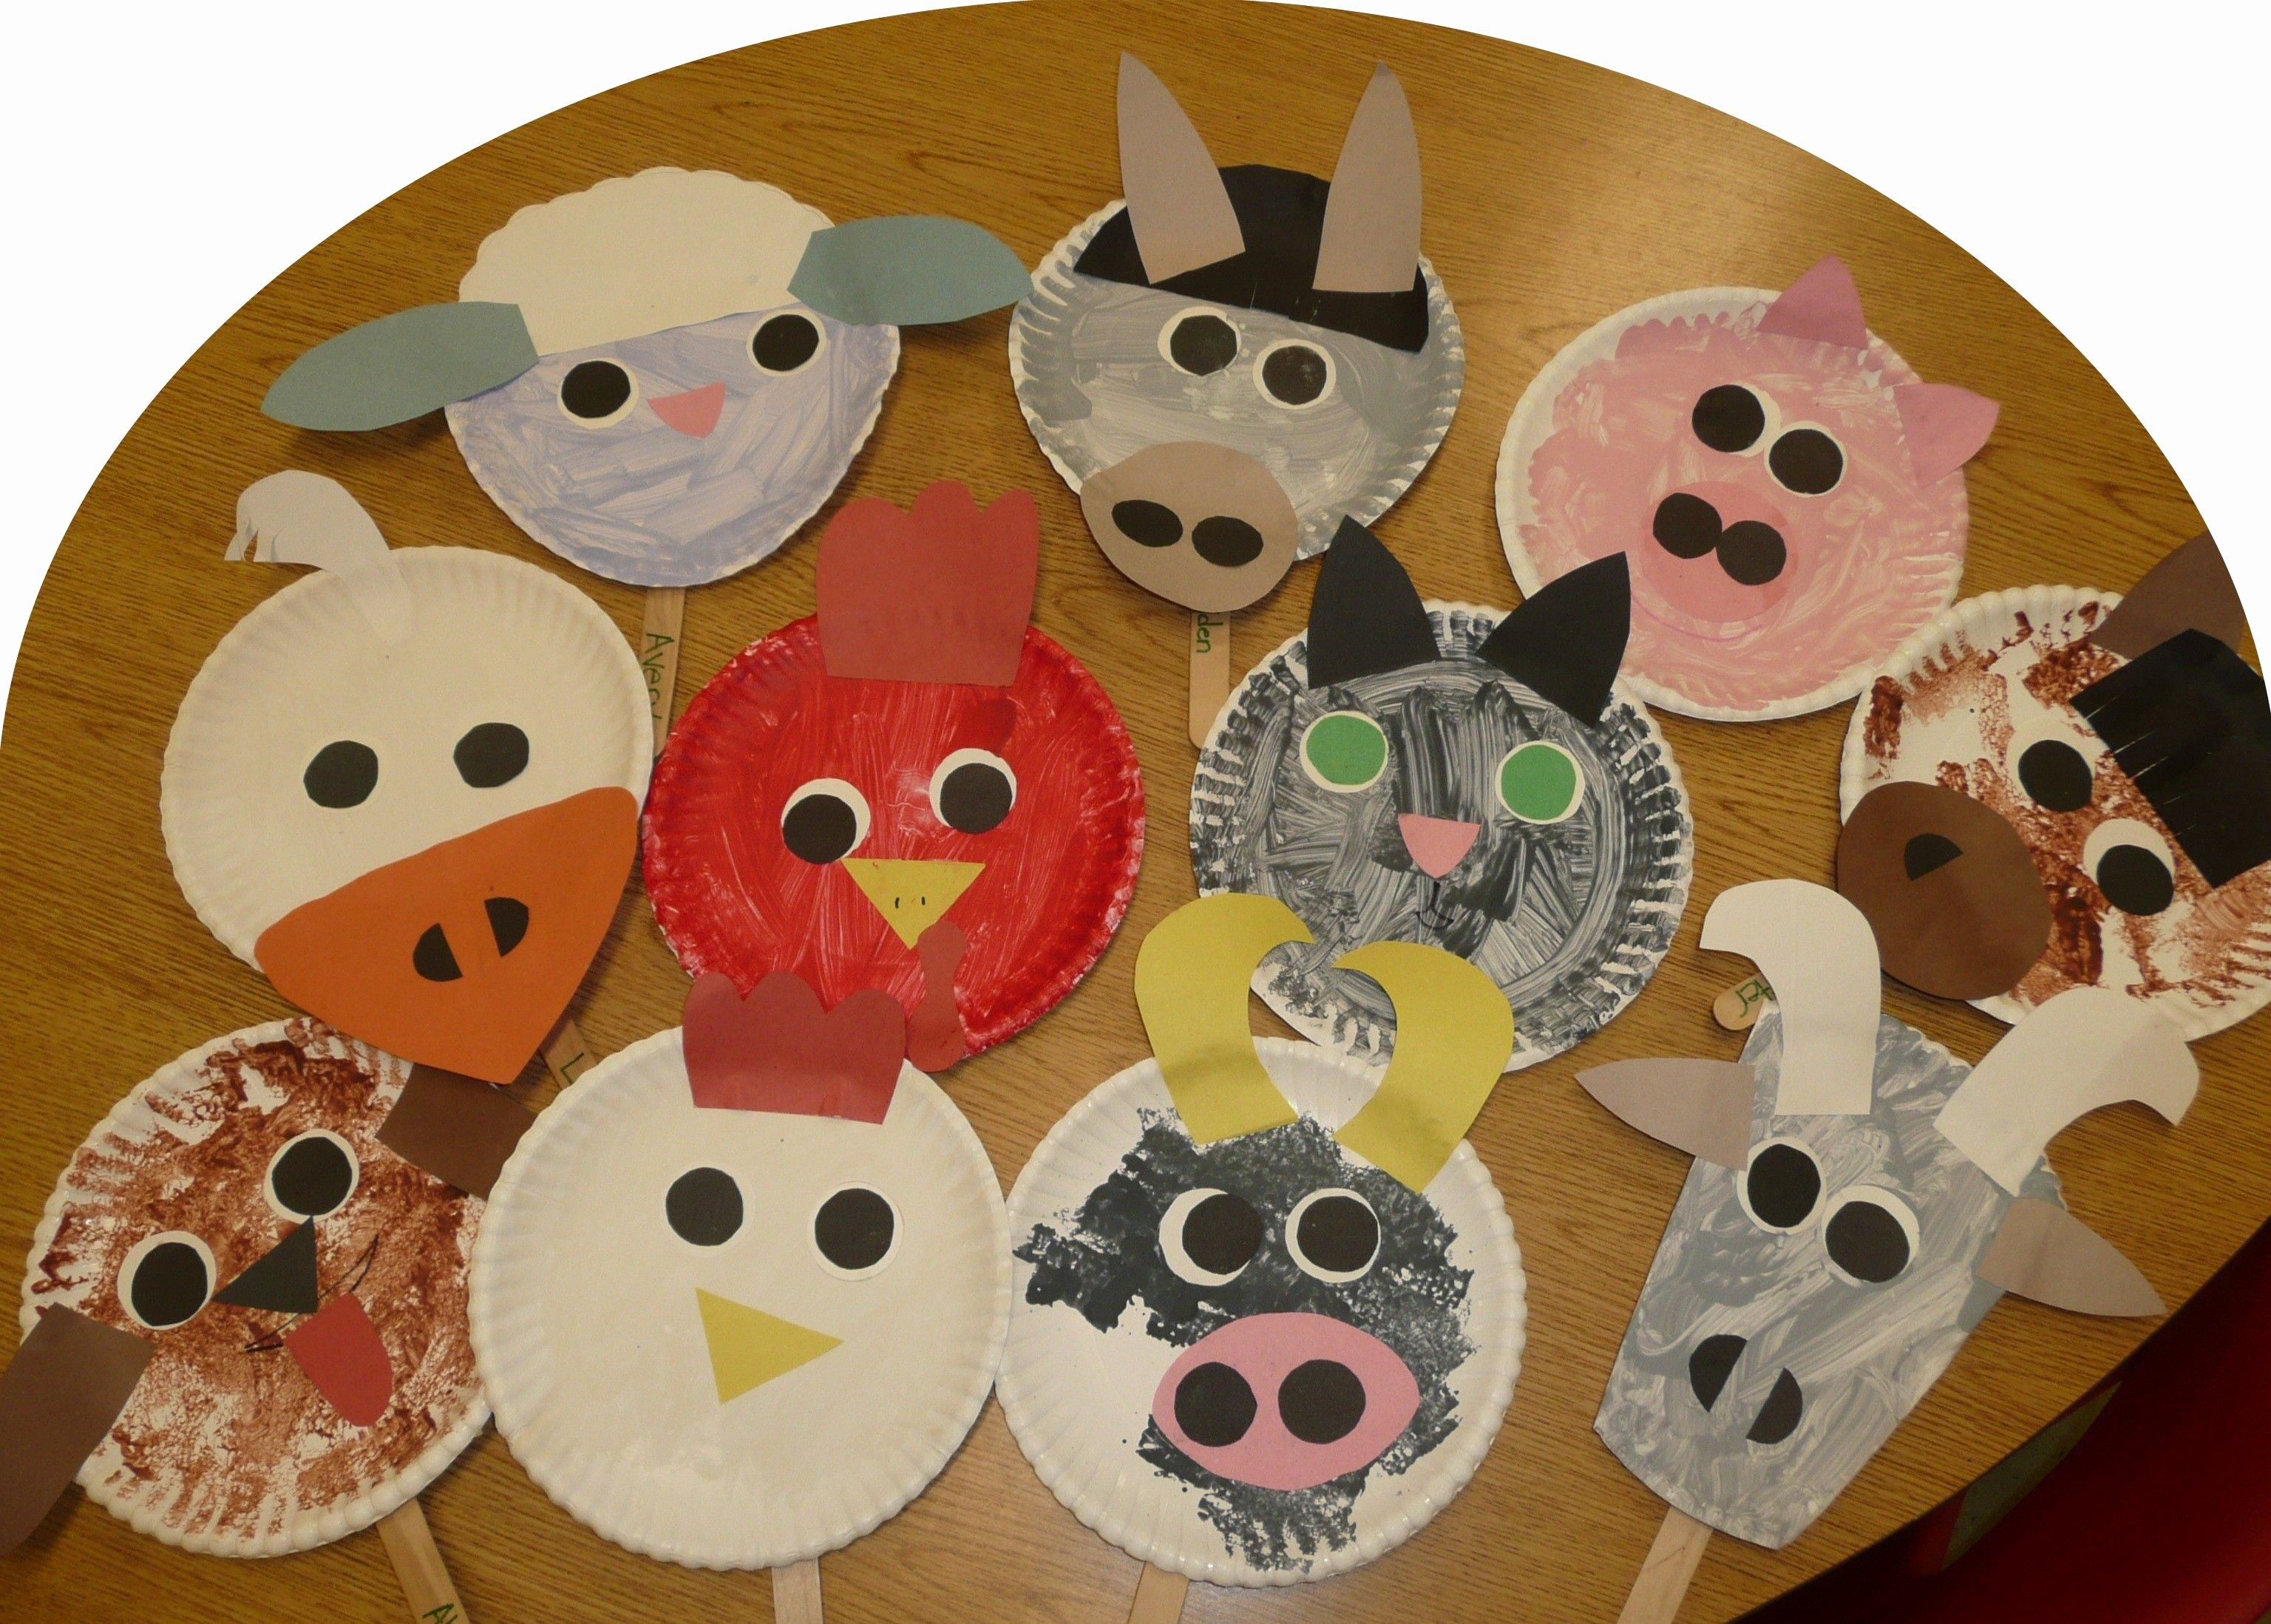 Farm Animal Cut Outs Unique Paper Plate Farm Animals Using the Animals From the Big